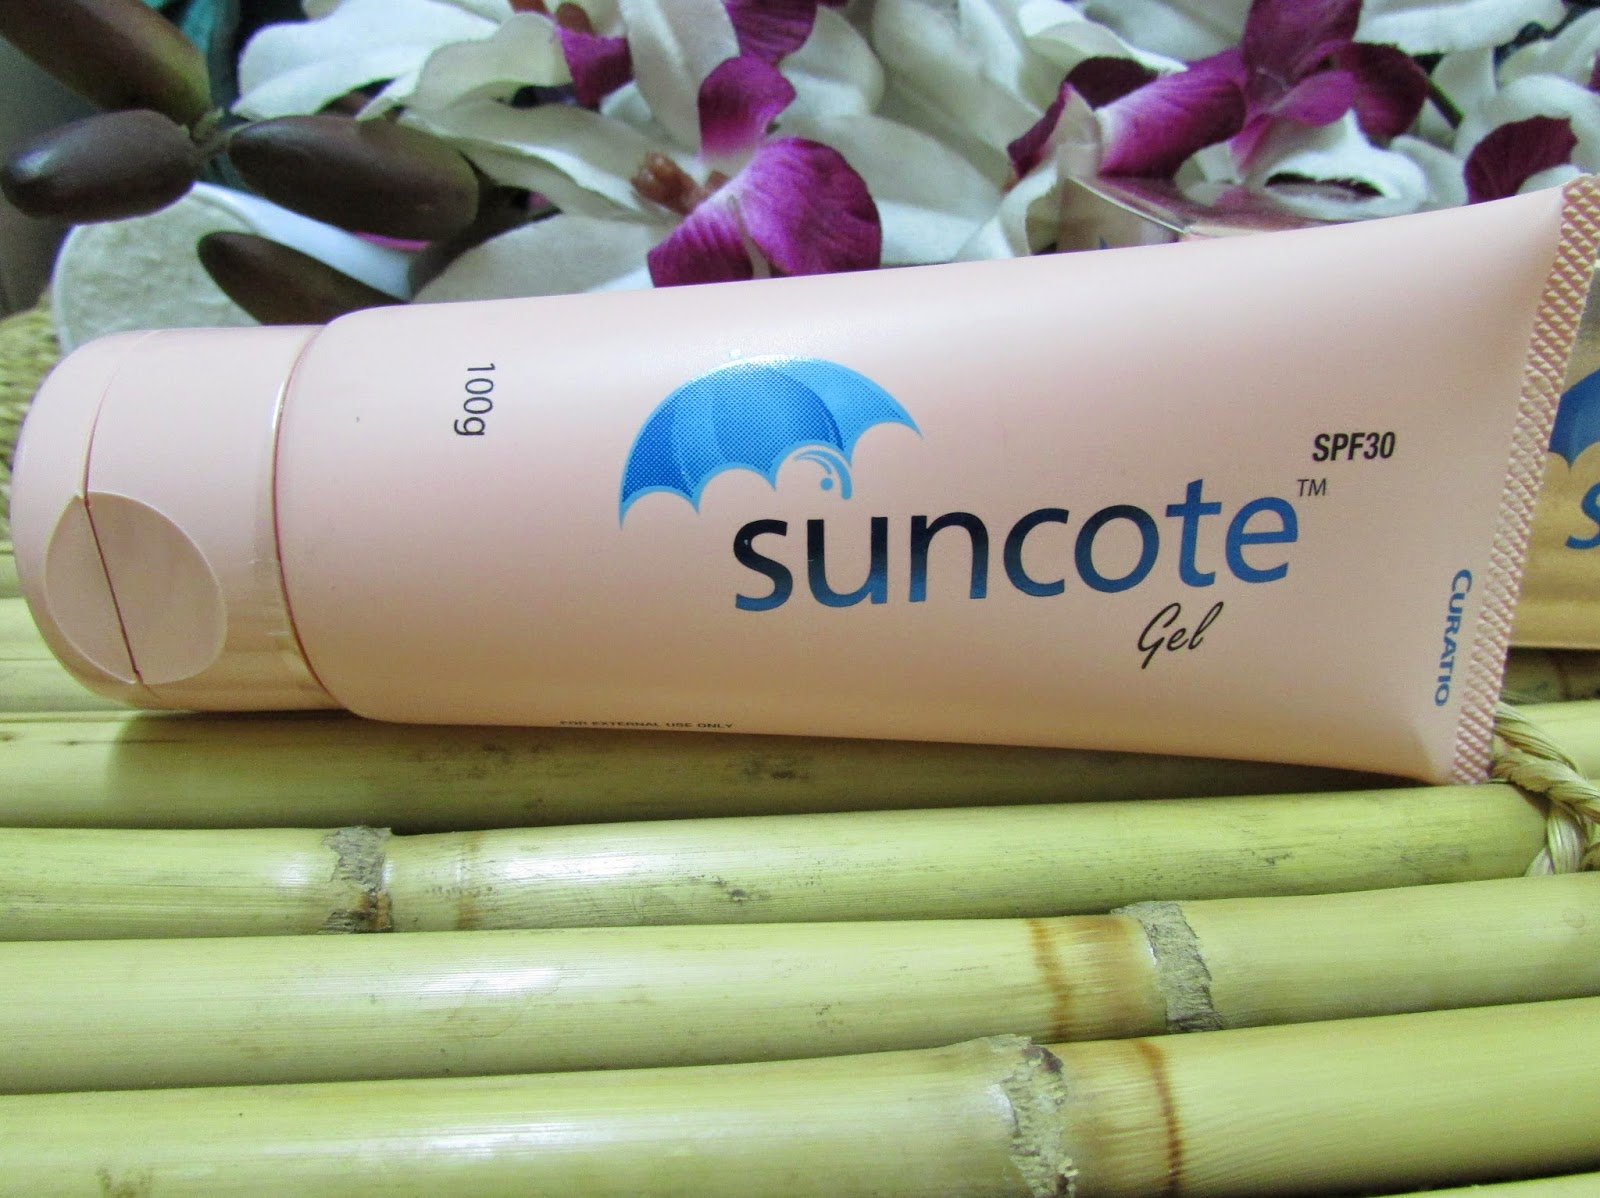 product-review, suncote sunscreen gel, suncote sunscreen lotion, suncote sunscreen price, suncote sunscreen review, sunscreen for acne prone skin, sunscreen for oily skin,